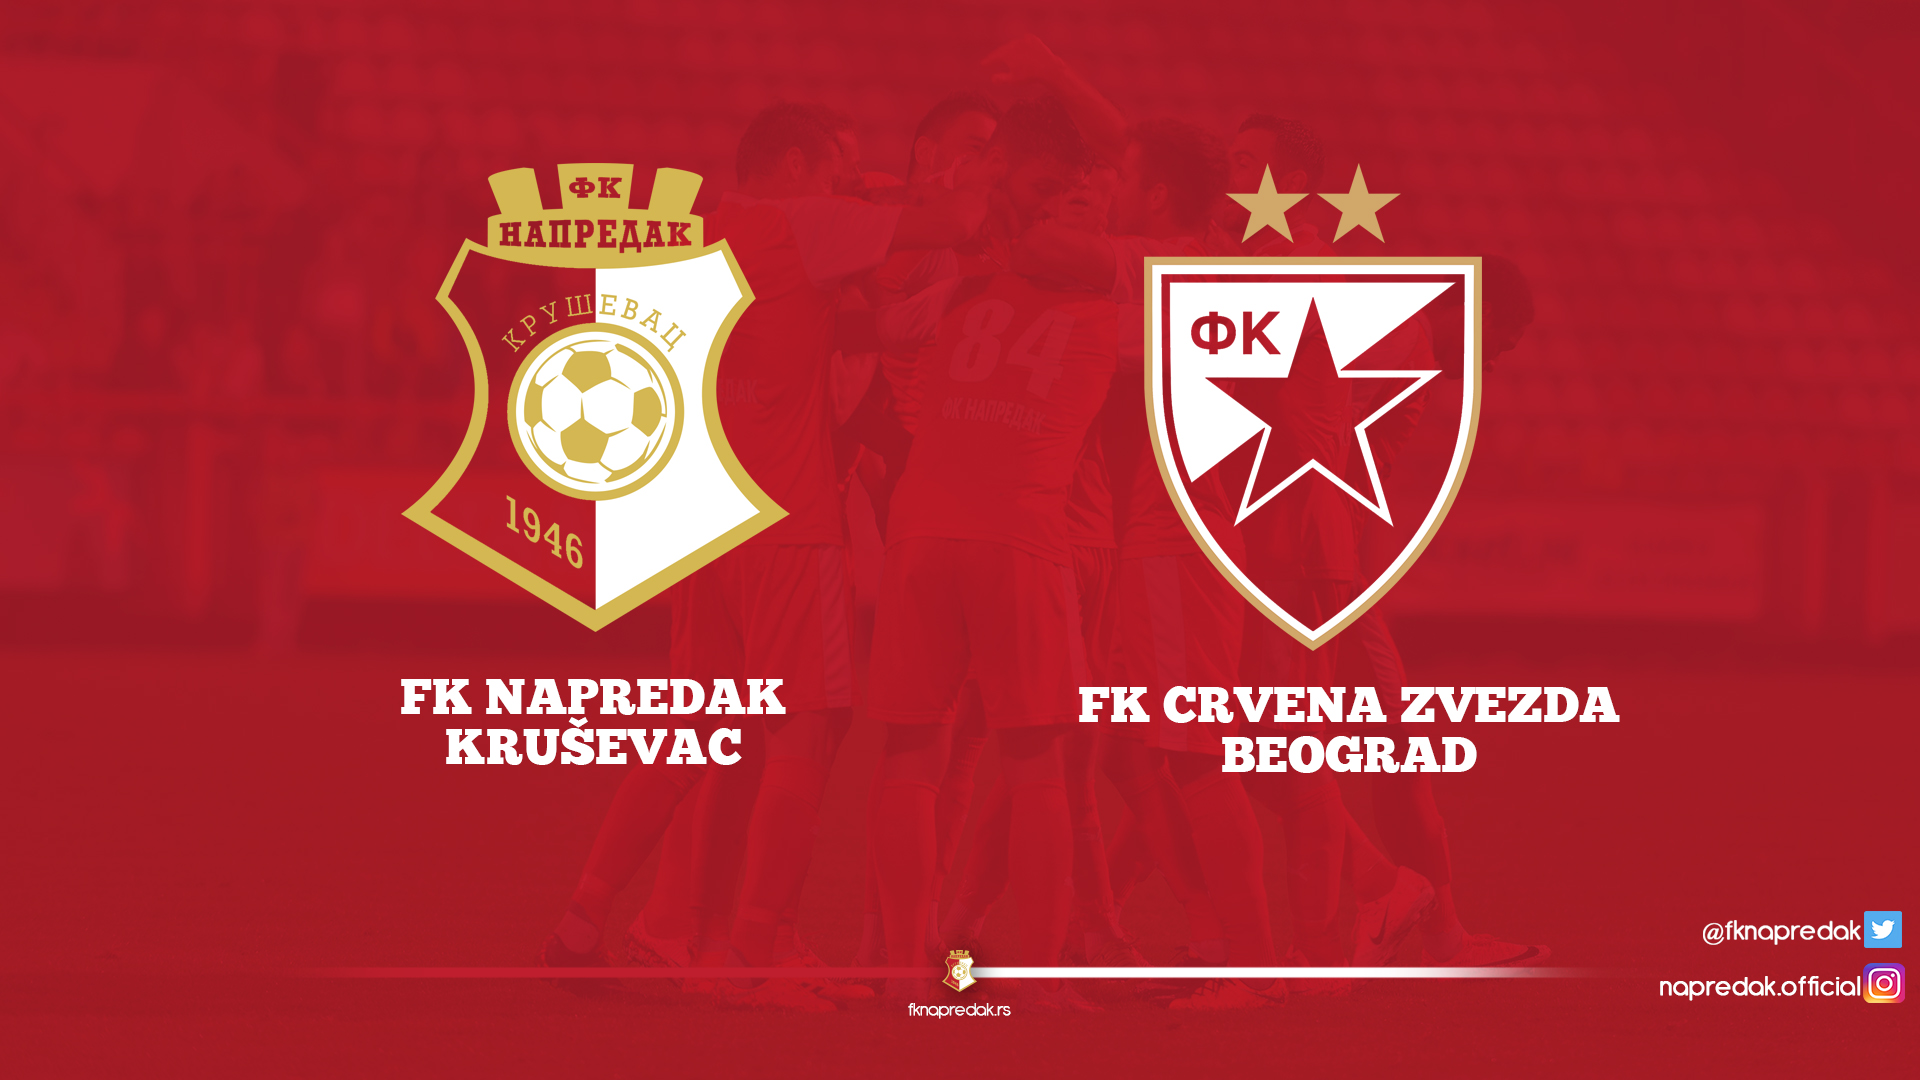 Napredak F.C. - Red star F.C. 0:3